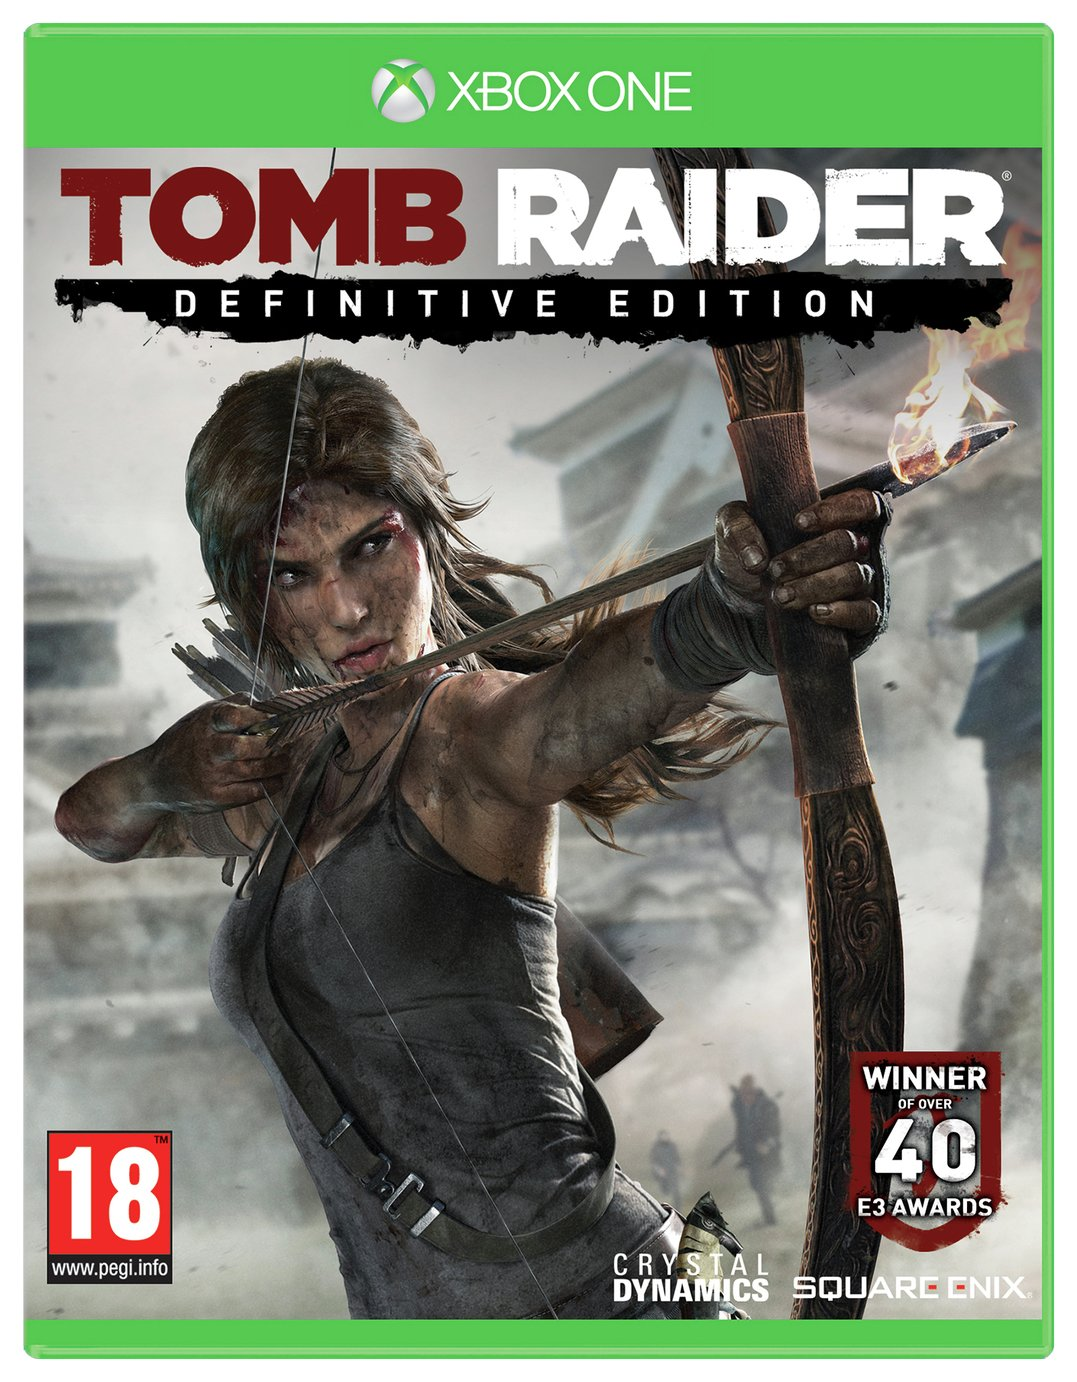 Tomb Raider: Definitive Edition Xbox One Game from Tomb Raider